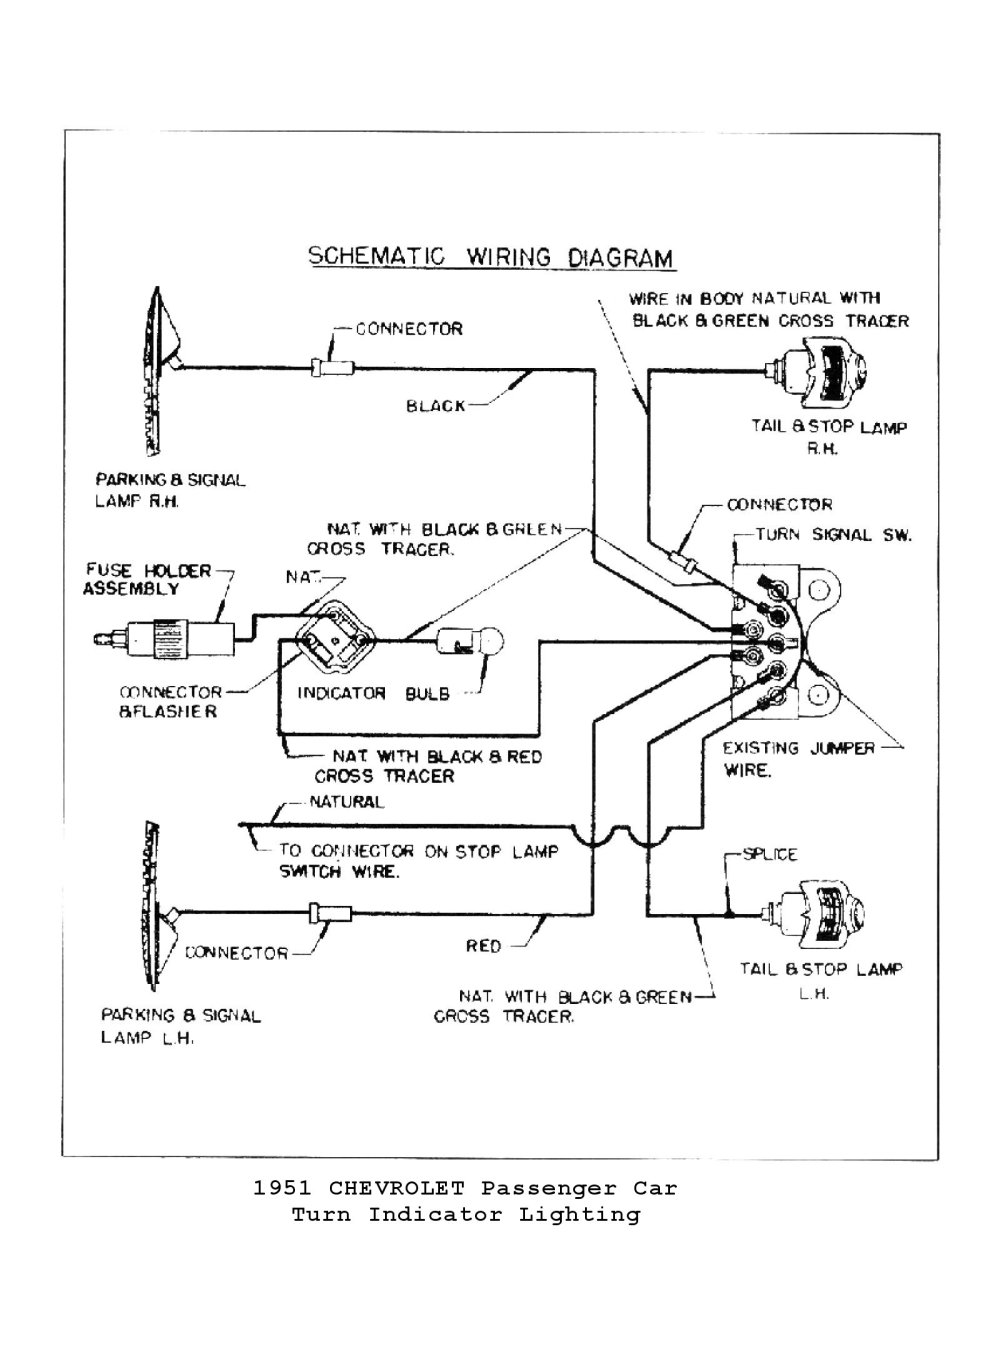 medium resolution of 53 chevy truck light wire diagram wiring diagram wiring diagram for 1953 chevy pickup truck